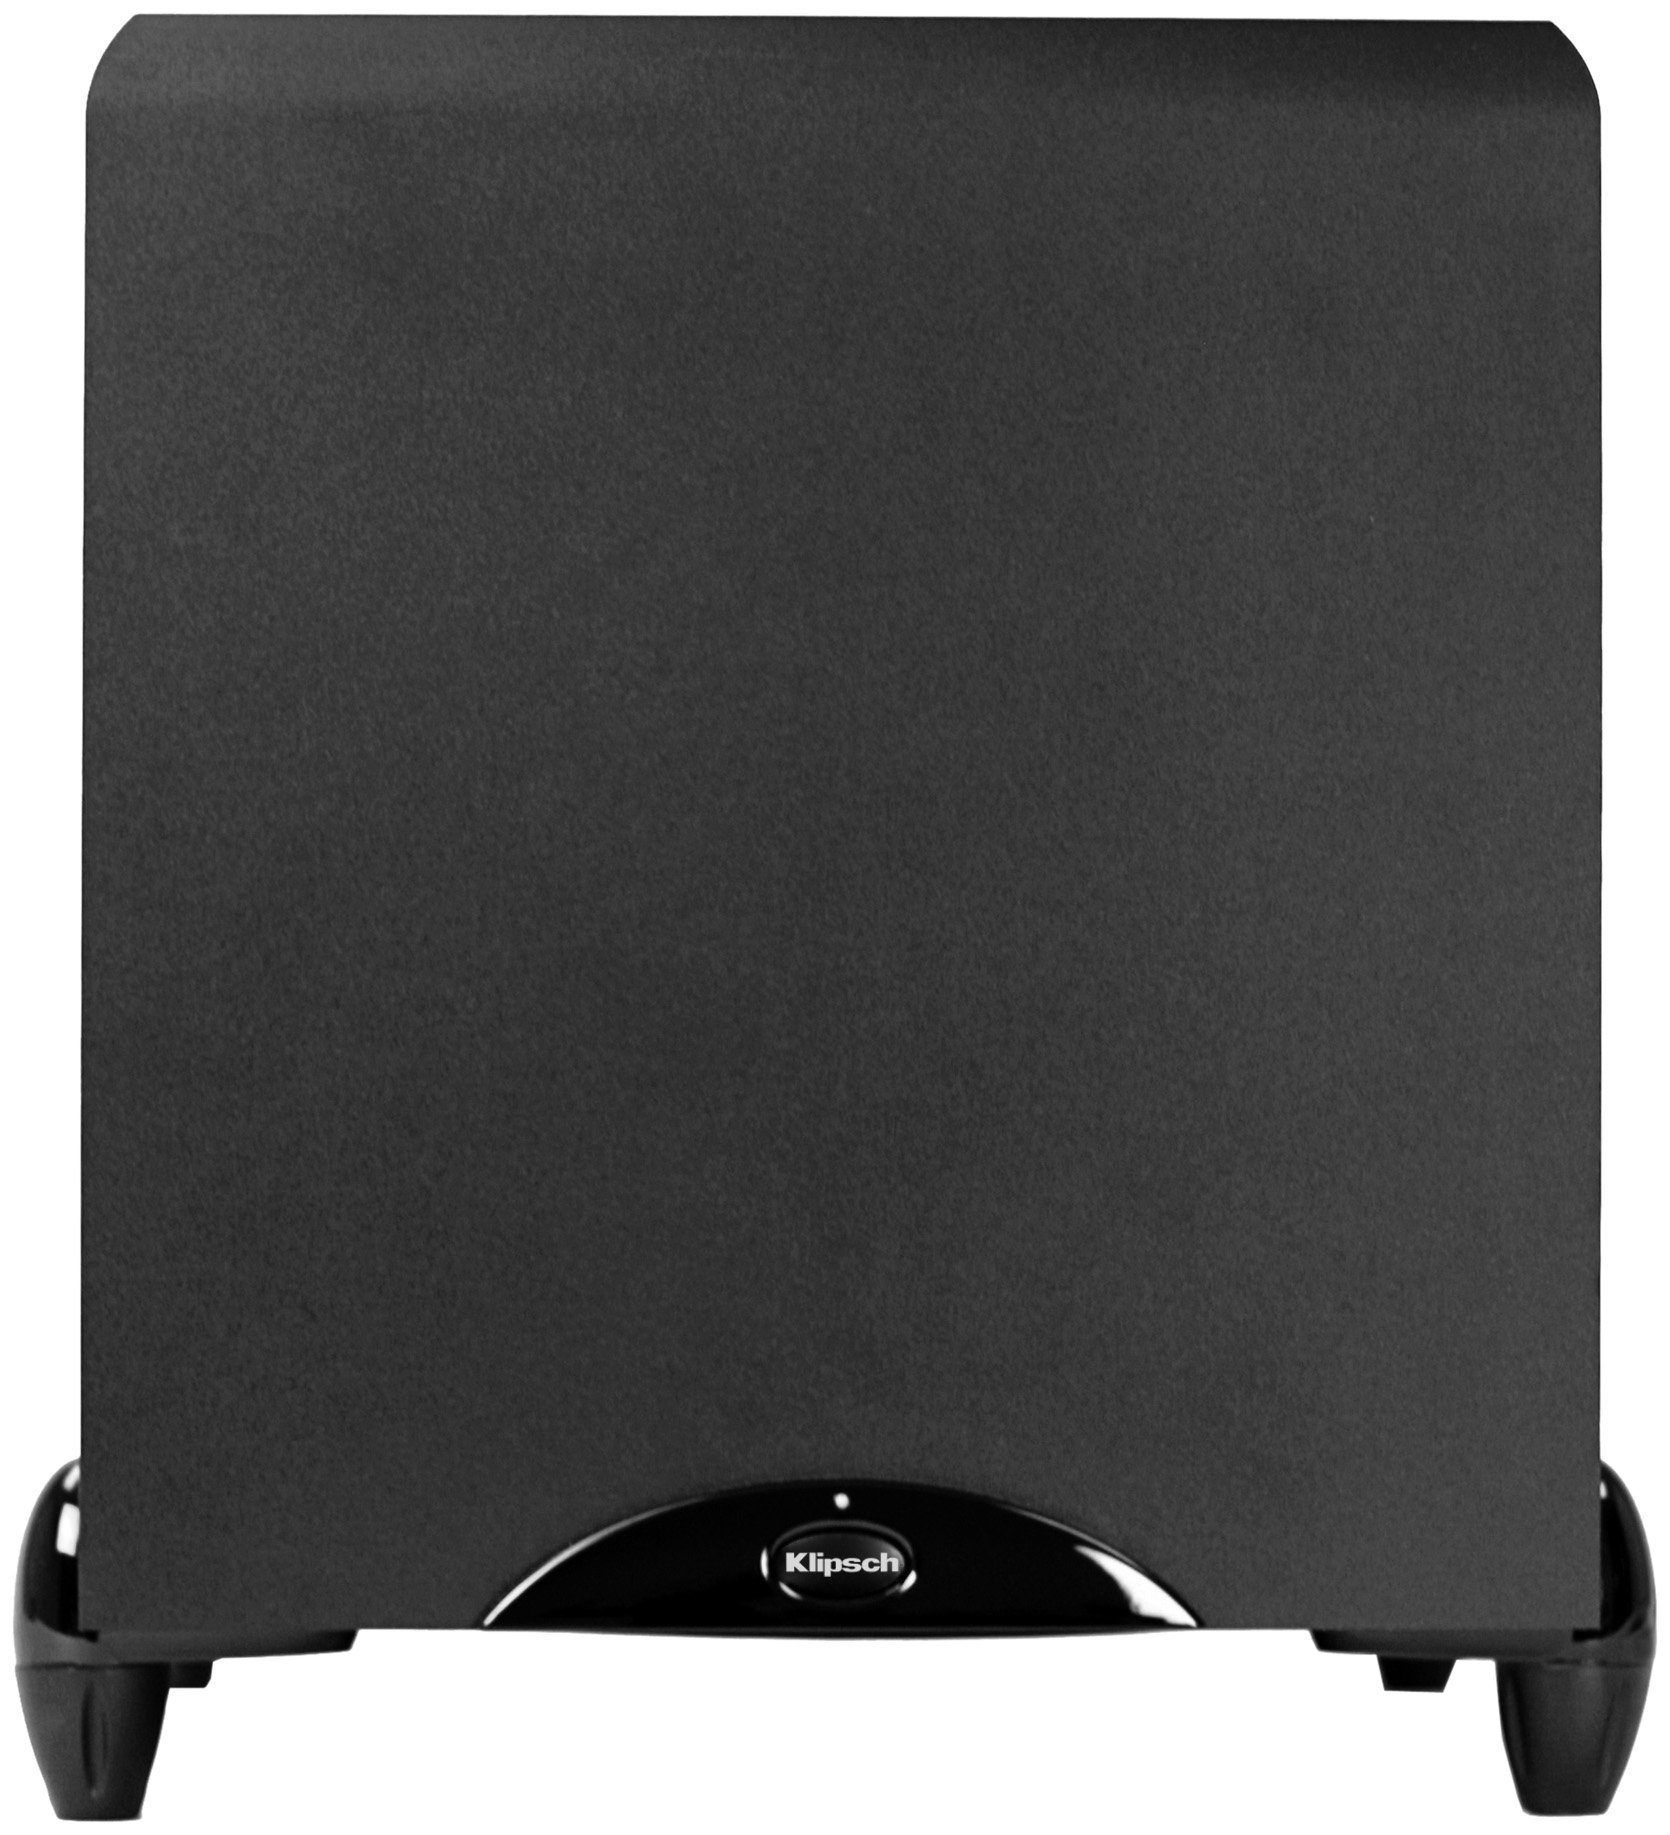 Klipsch Sub-12HG Synergy Series 12-Inch 300-Watt Subwoofer with High Gloss Trim (Black) (Discontinued by Manufacturer) by Klipsch